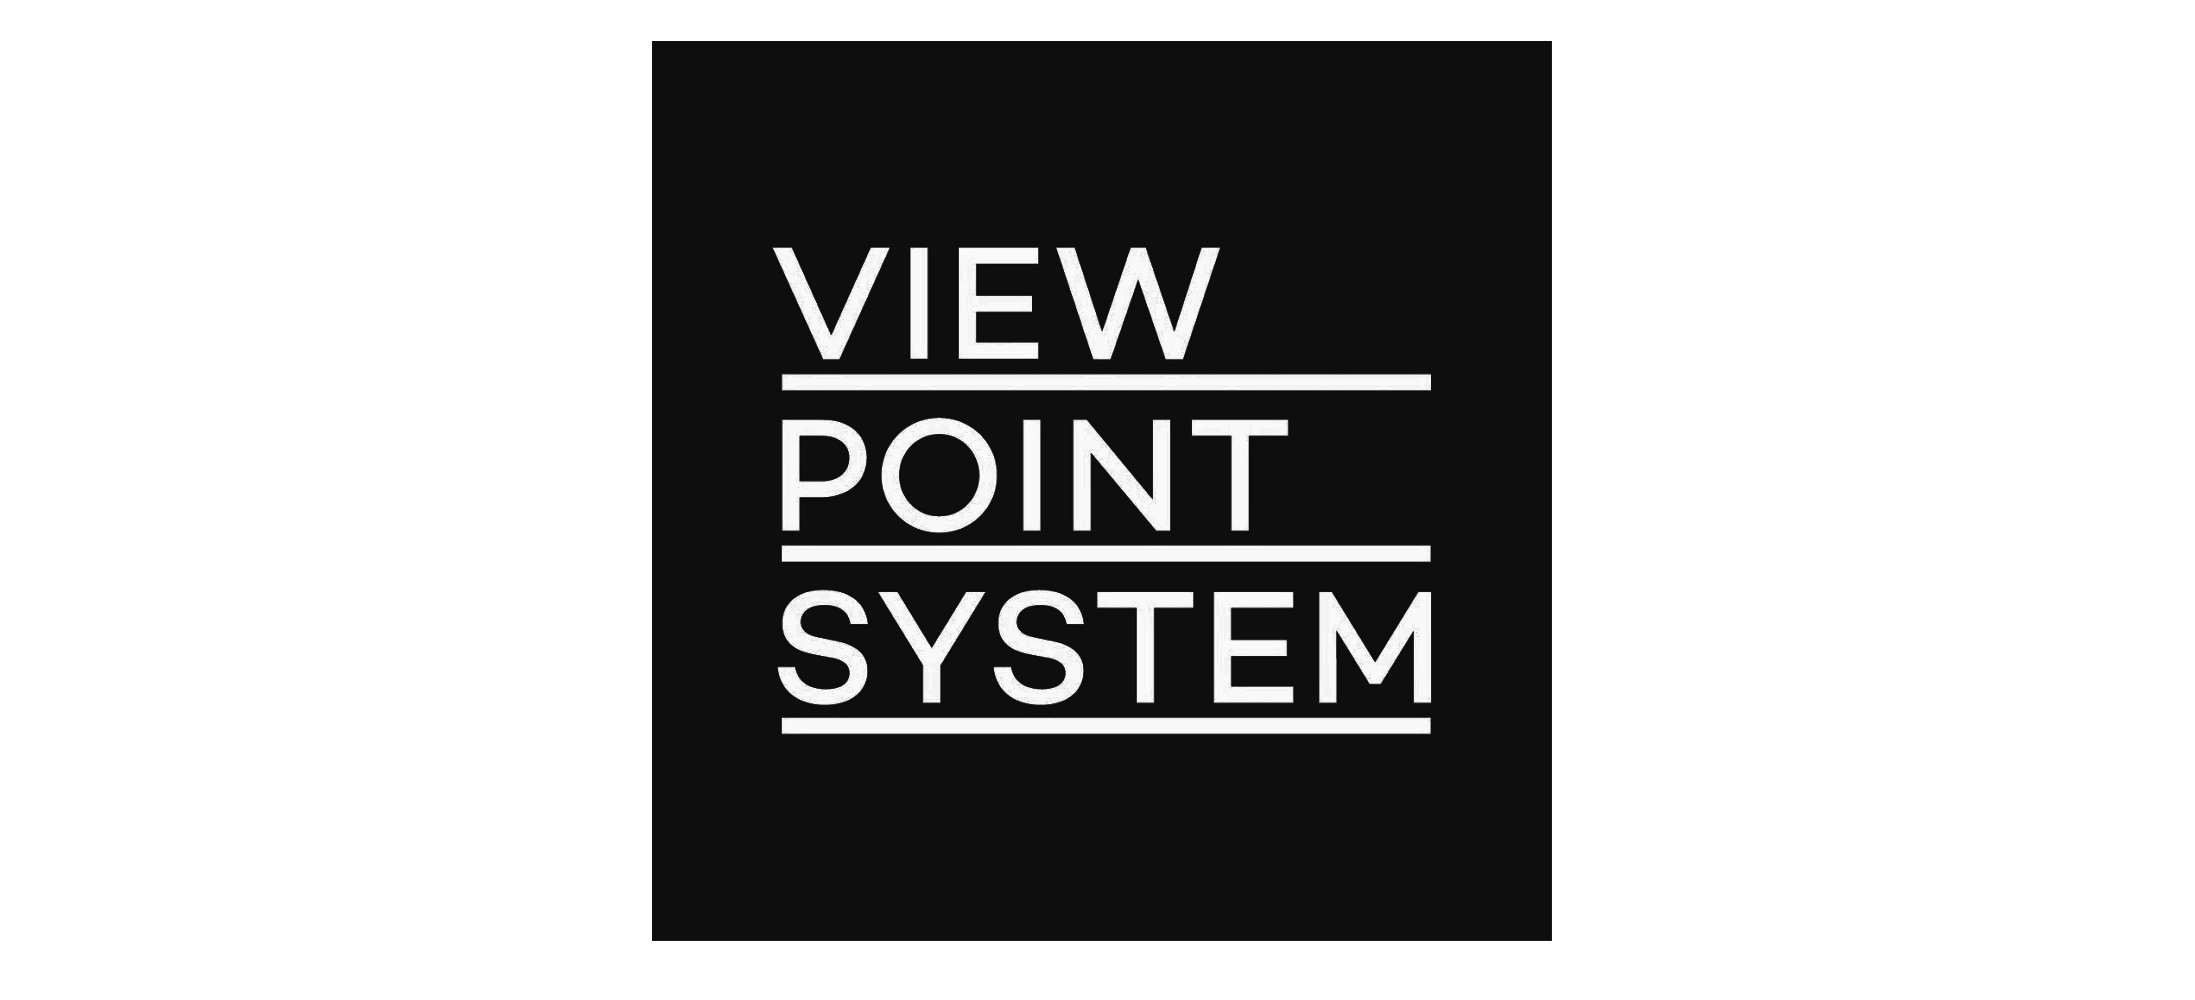 client logo viewpoint system